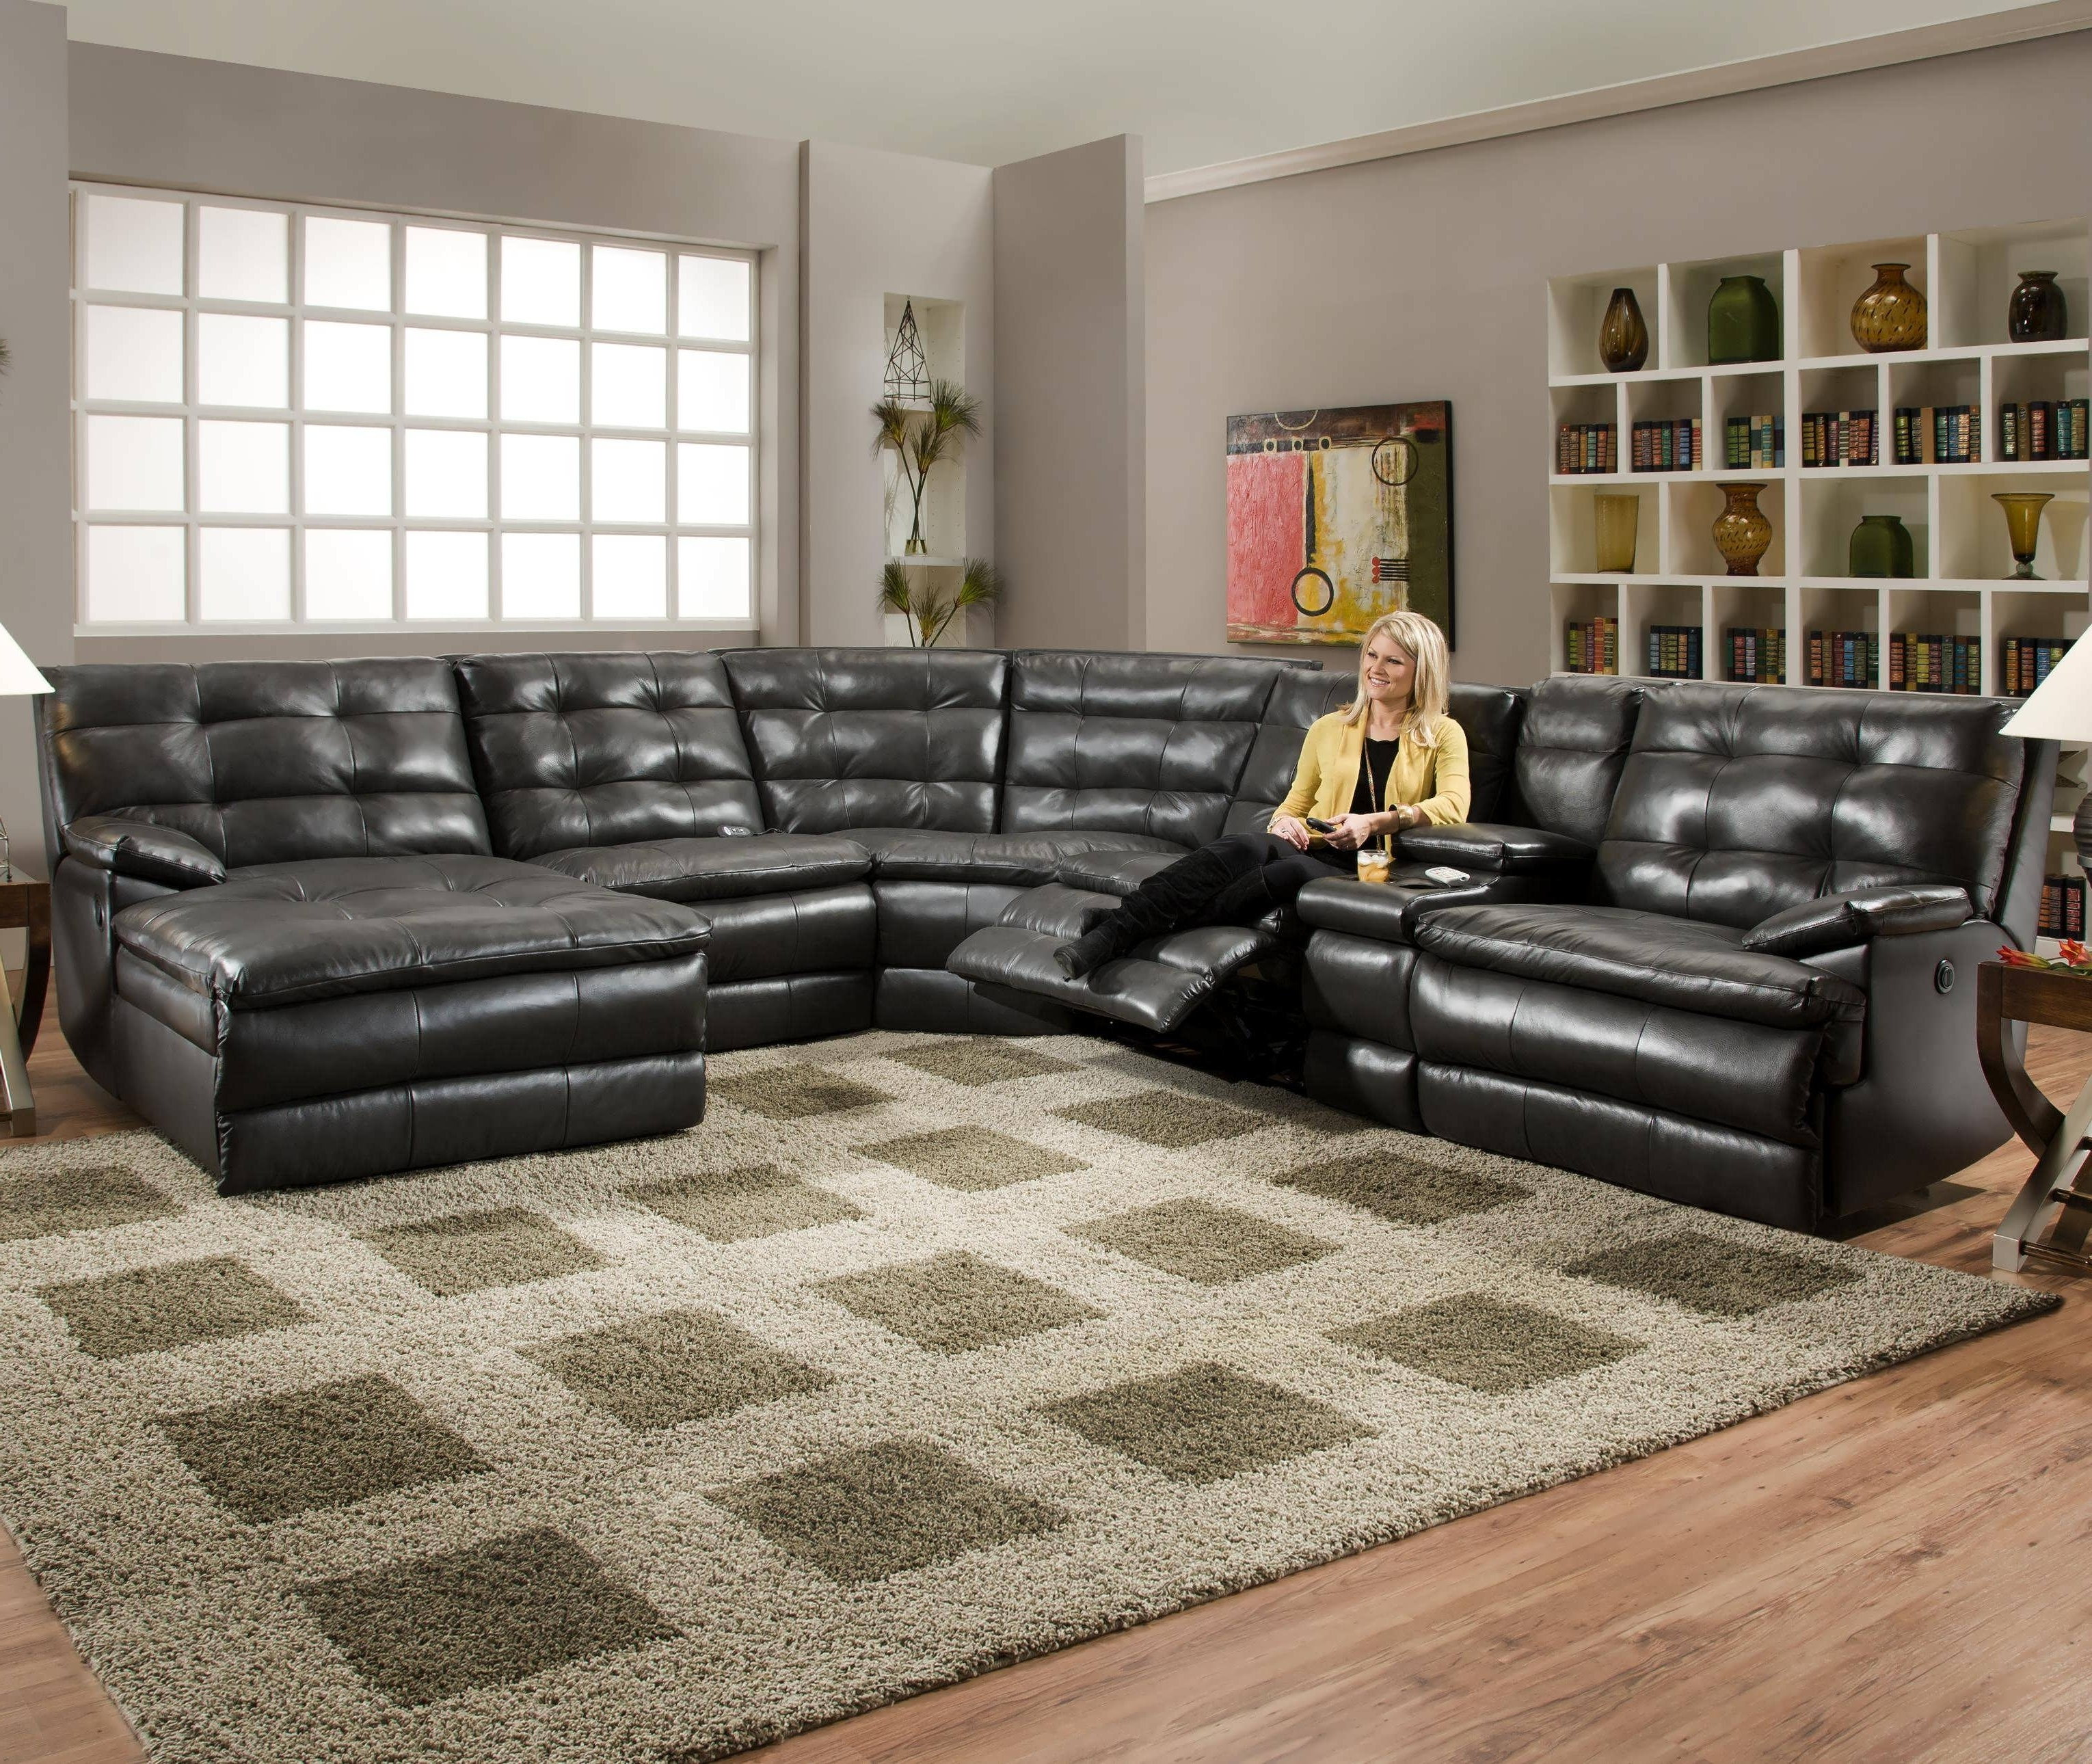 2017 Black Leather Sectionals With Chaise For Sofa : Gray Sectional Sleeper Sofa Black And Grey Sectional Black (View 1 of 15)